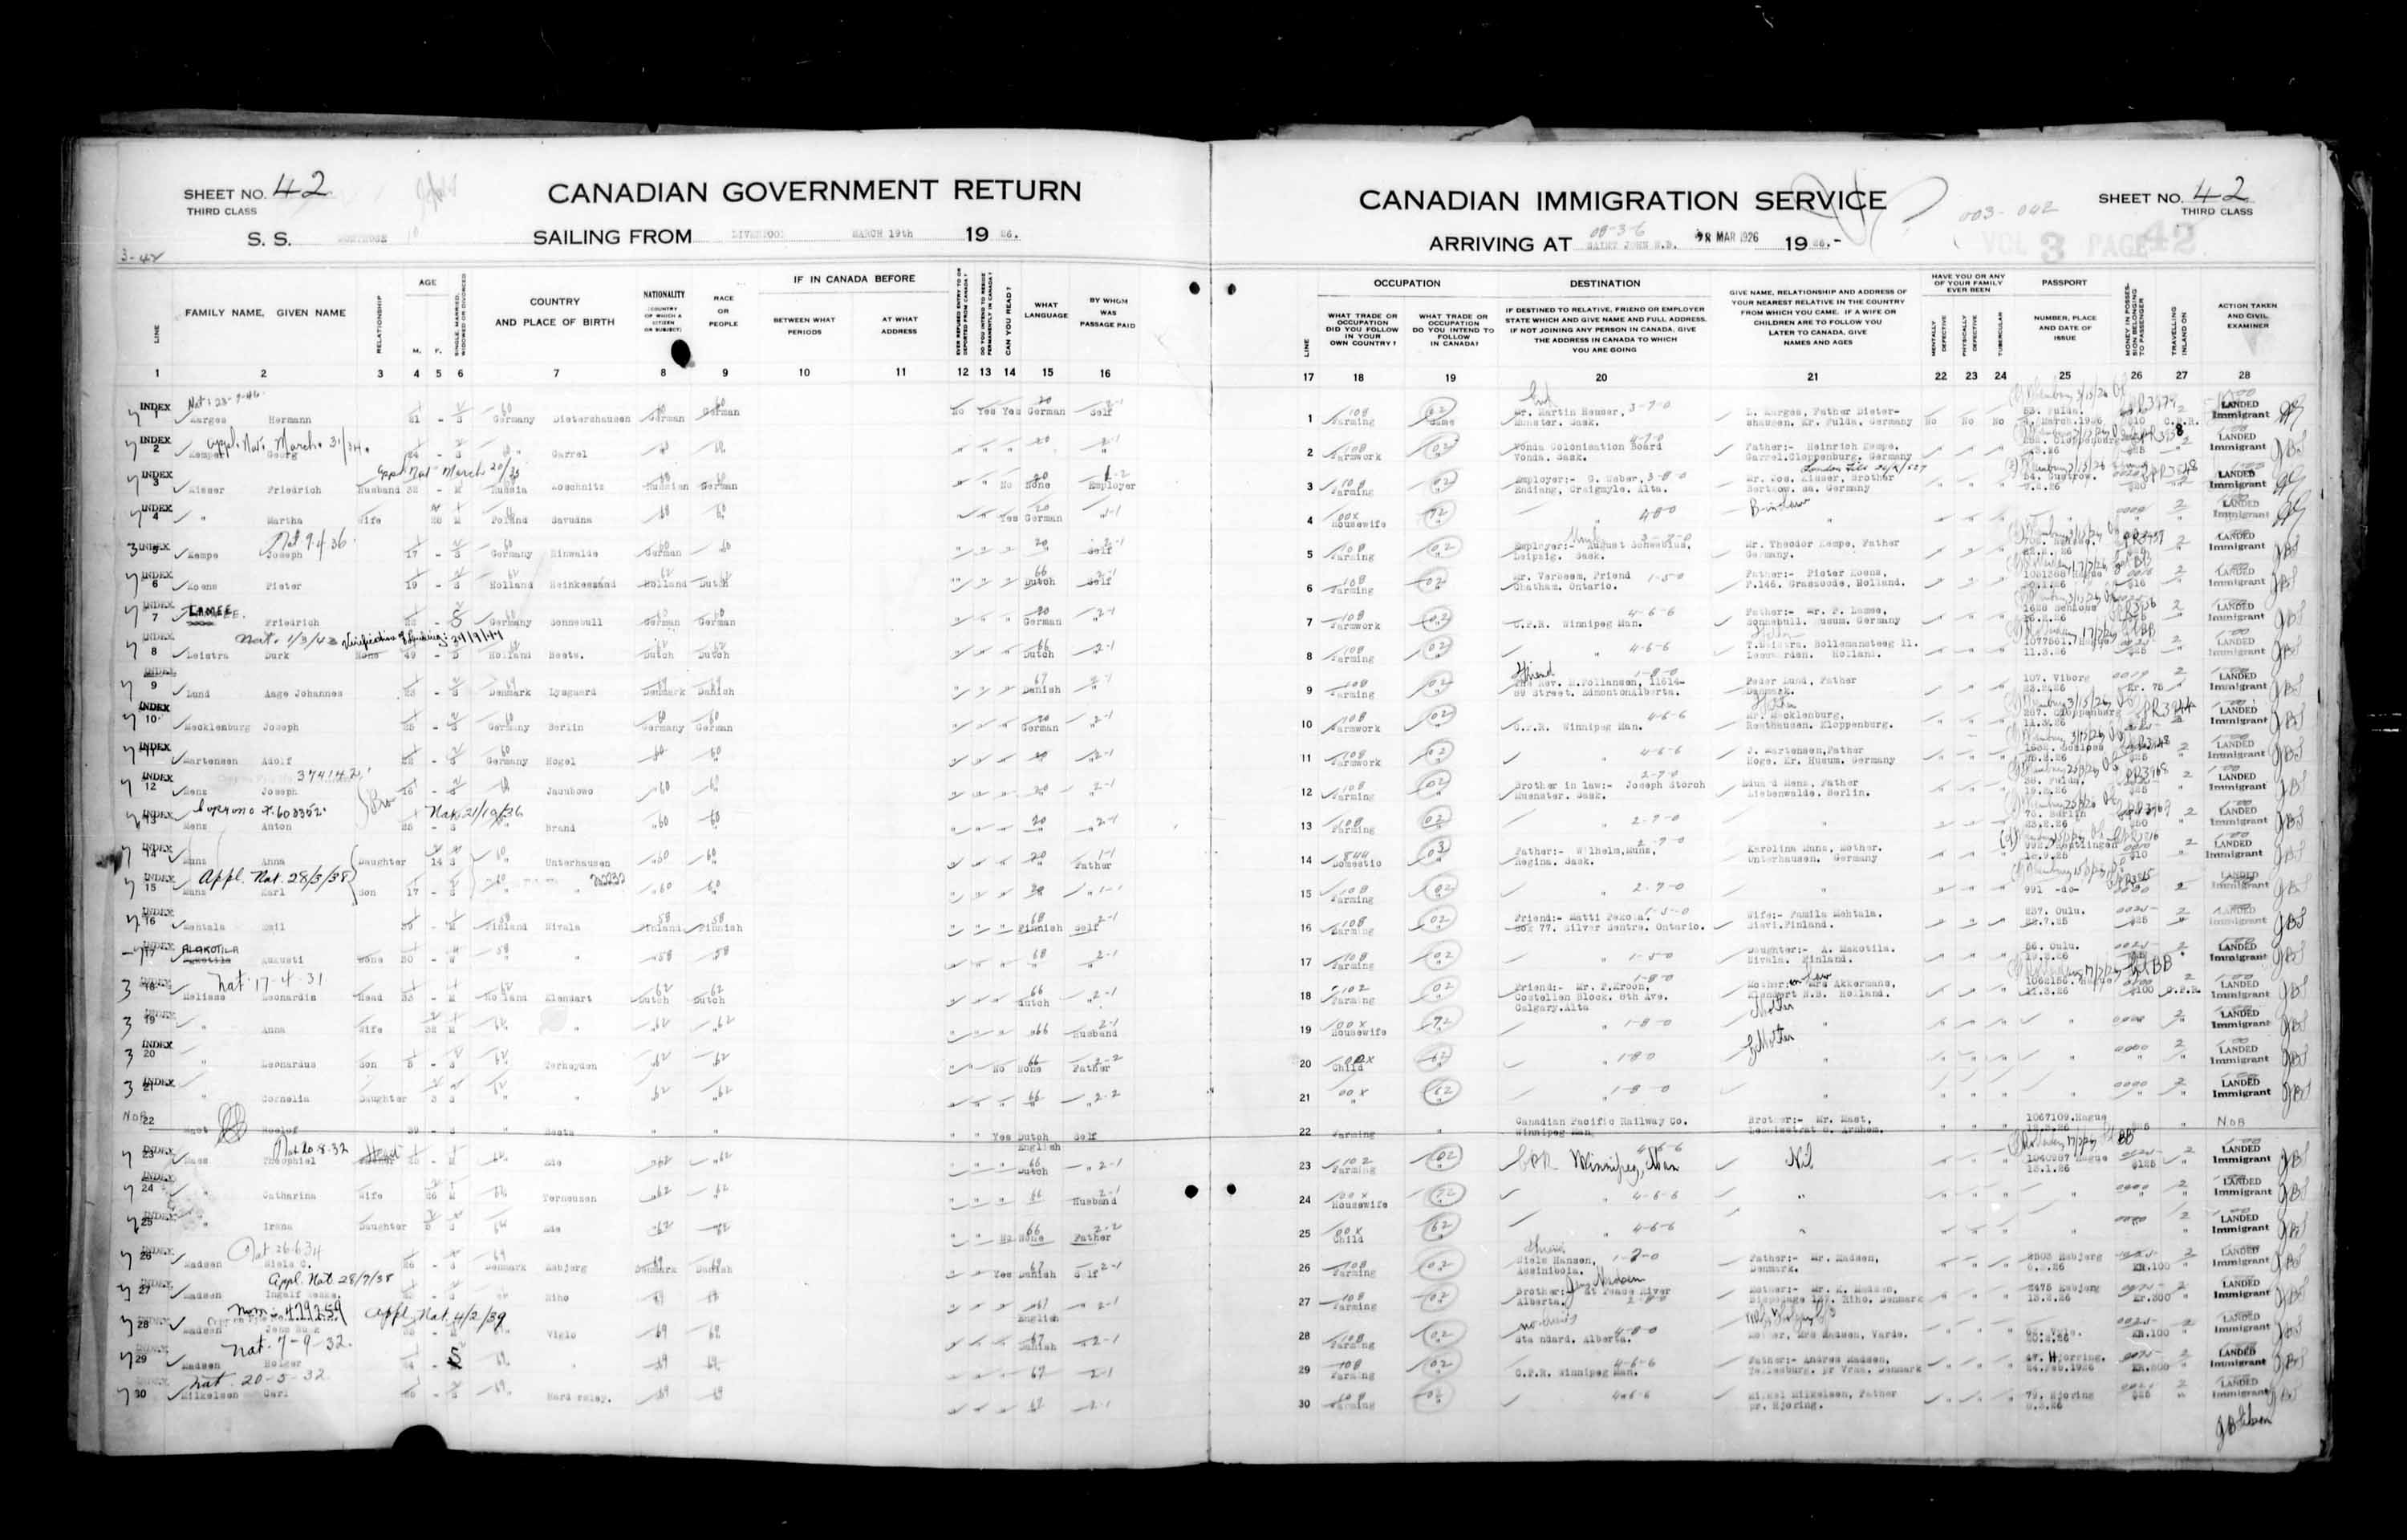 Title: Passenger Lists: Saint John (1925-1935) - Mikan Number: 134836 - Microform: t-14847